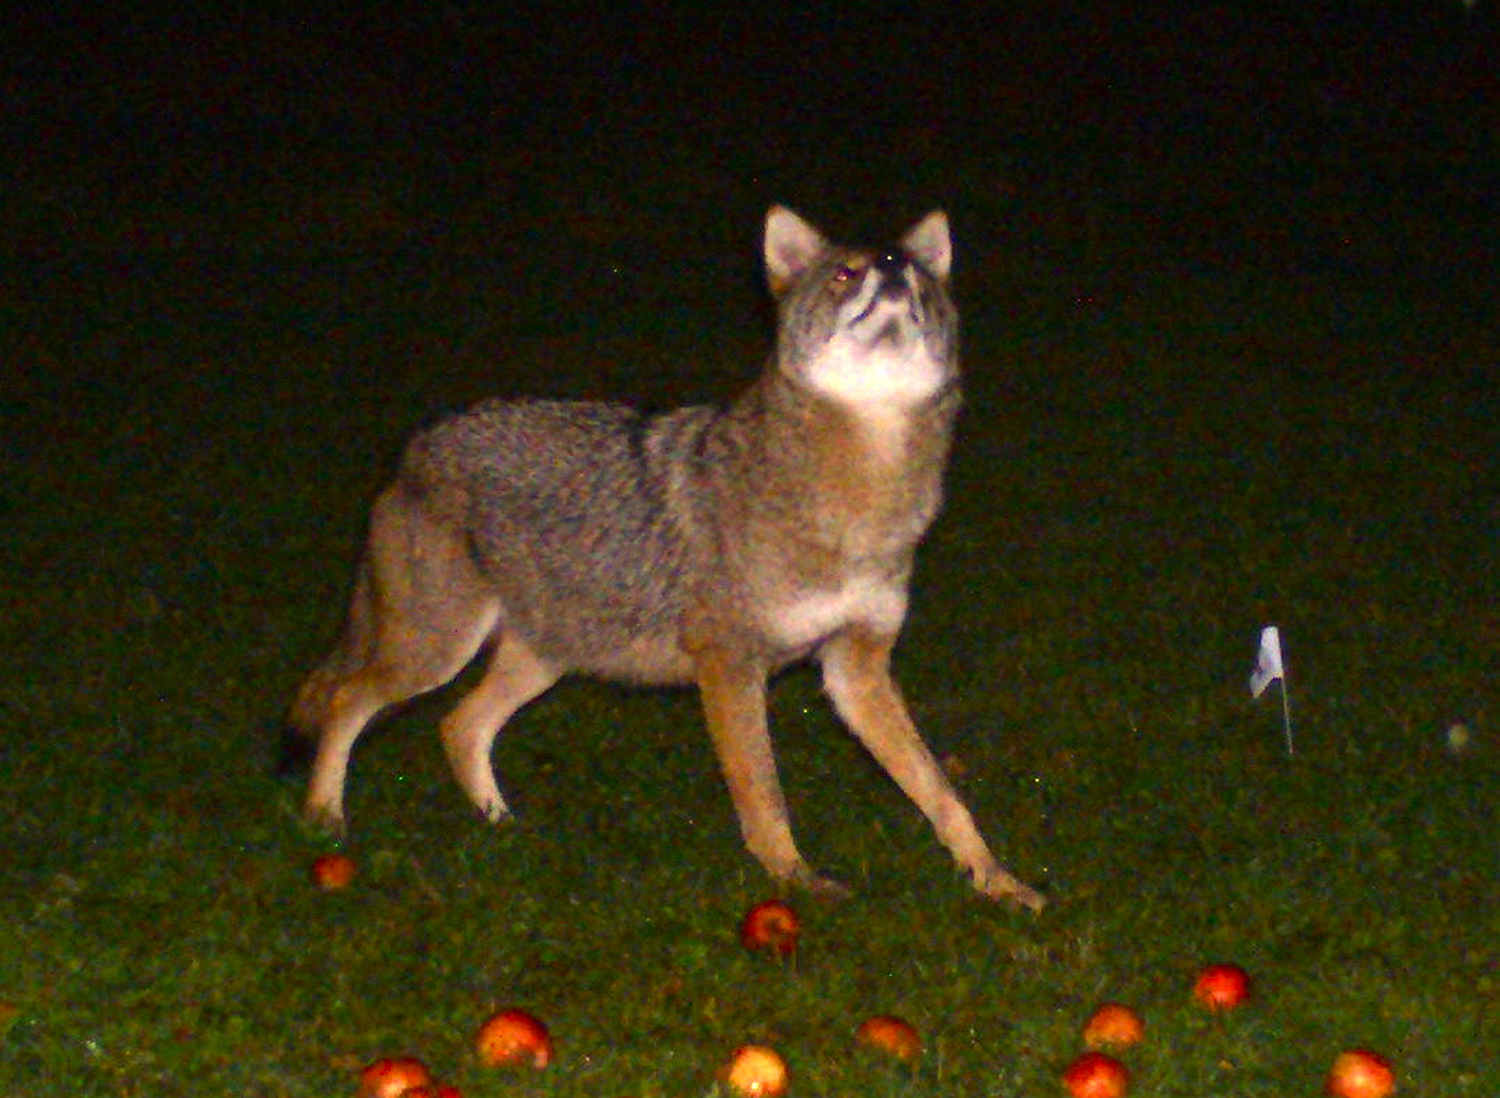 If an apple a day keeps one healthy, this coyote should be howling with content as the pickings are ripe and plentiful in Bruce Stillings' Falmouth yard.